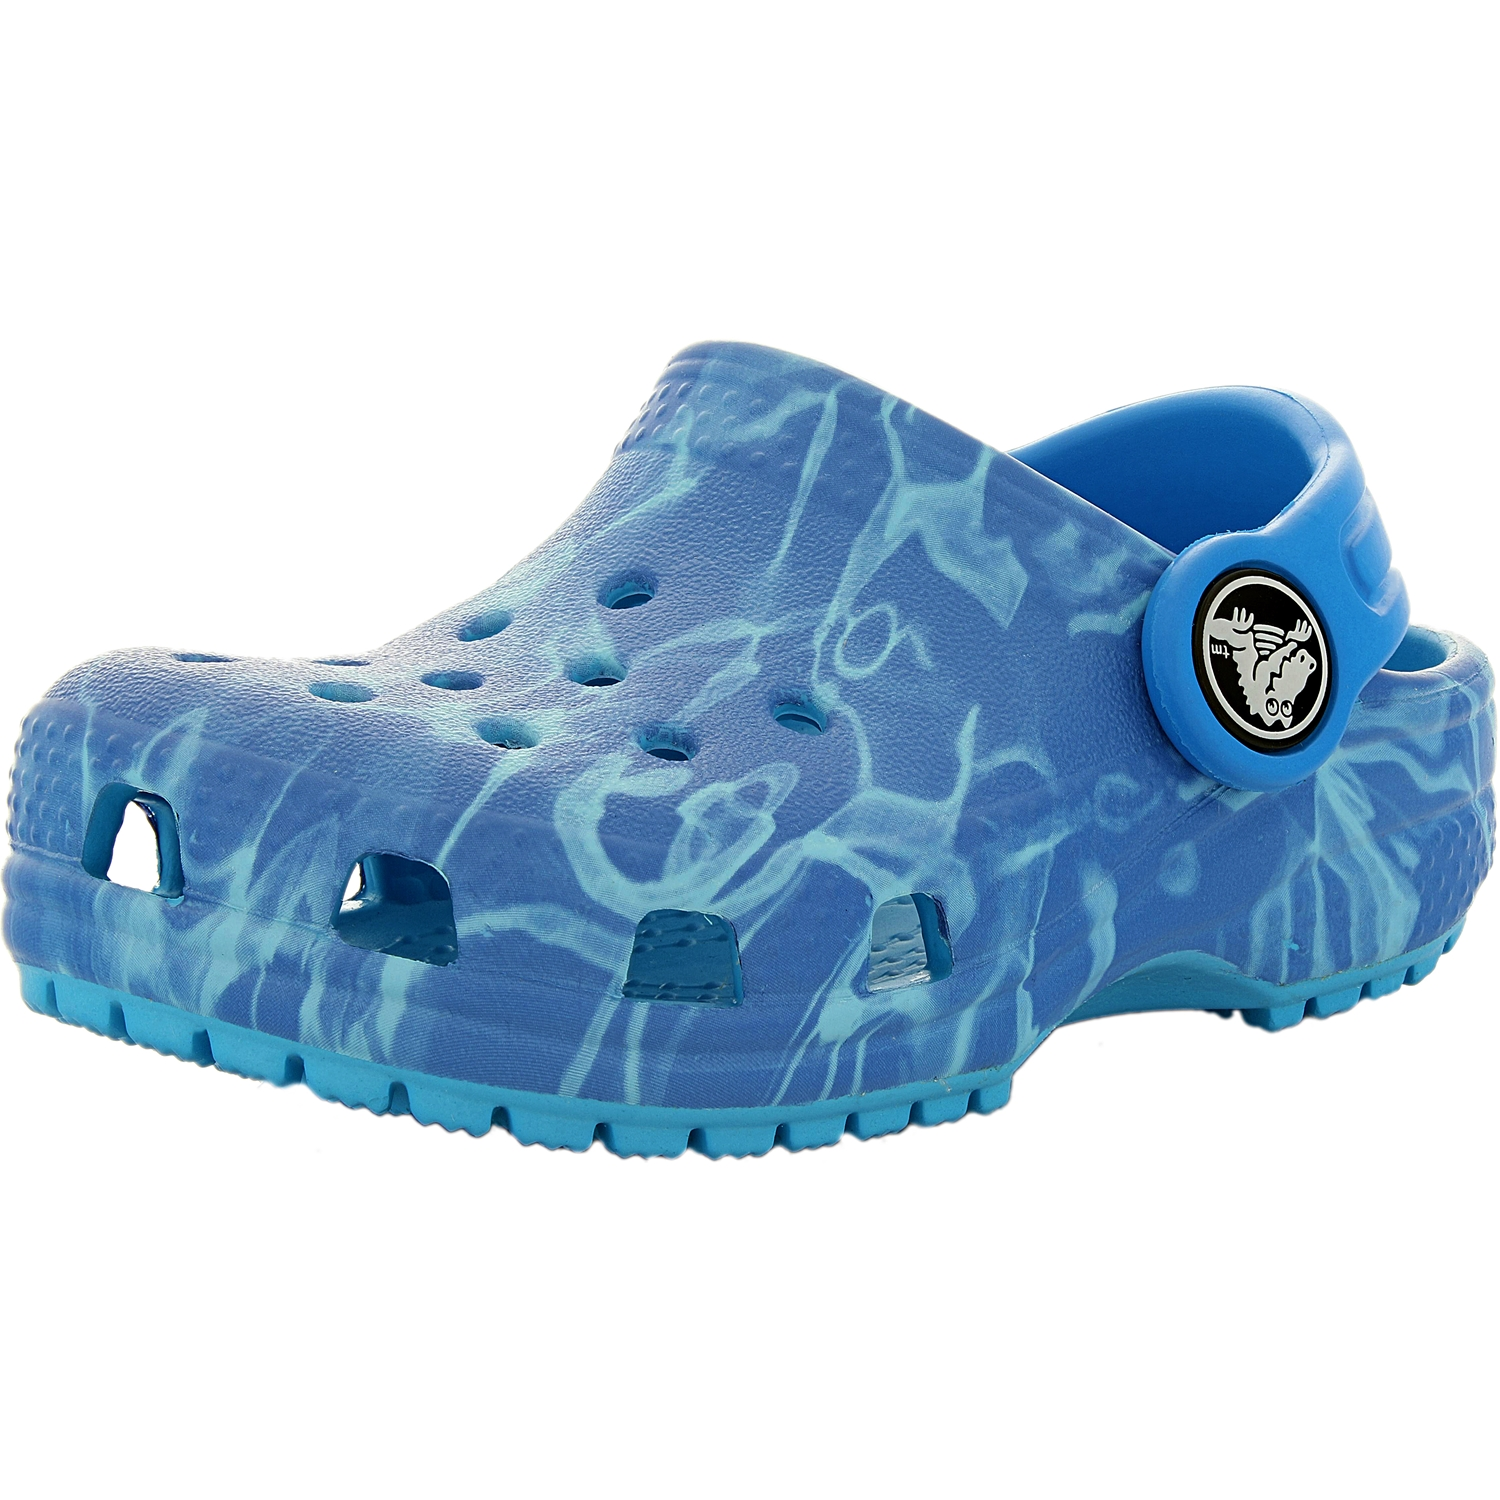 Crocs Boy's Classic Graphic Clog B Ankle-High Flat Shoe by Crocs